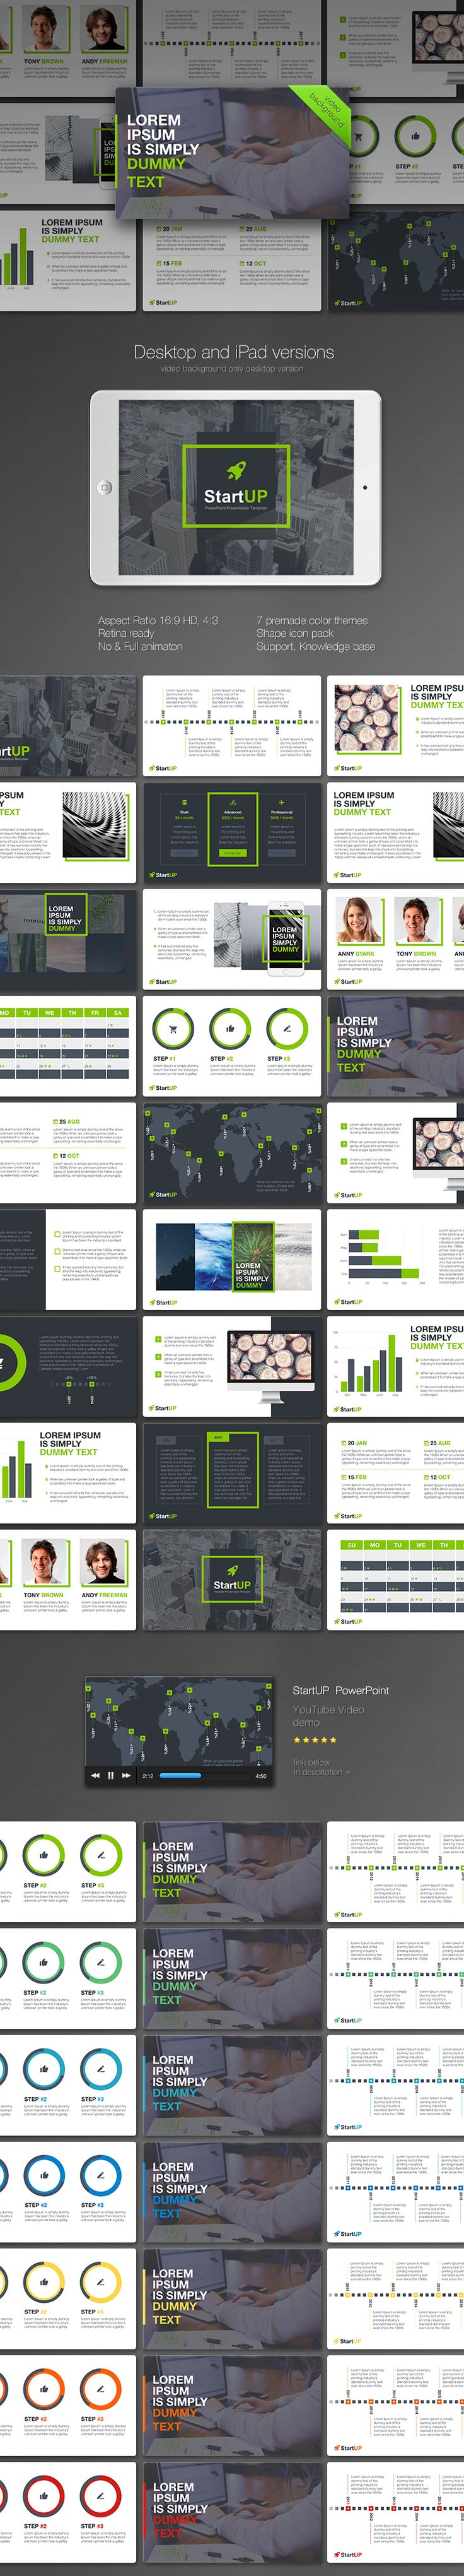 "Download: http://site2max.pro/startup-powerpoint-template/ StartUP"" PowerPoint template #pptx #powerpoint #presentation #startup #business #marketing #infographic #ipad"